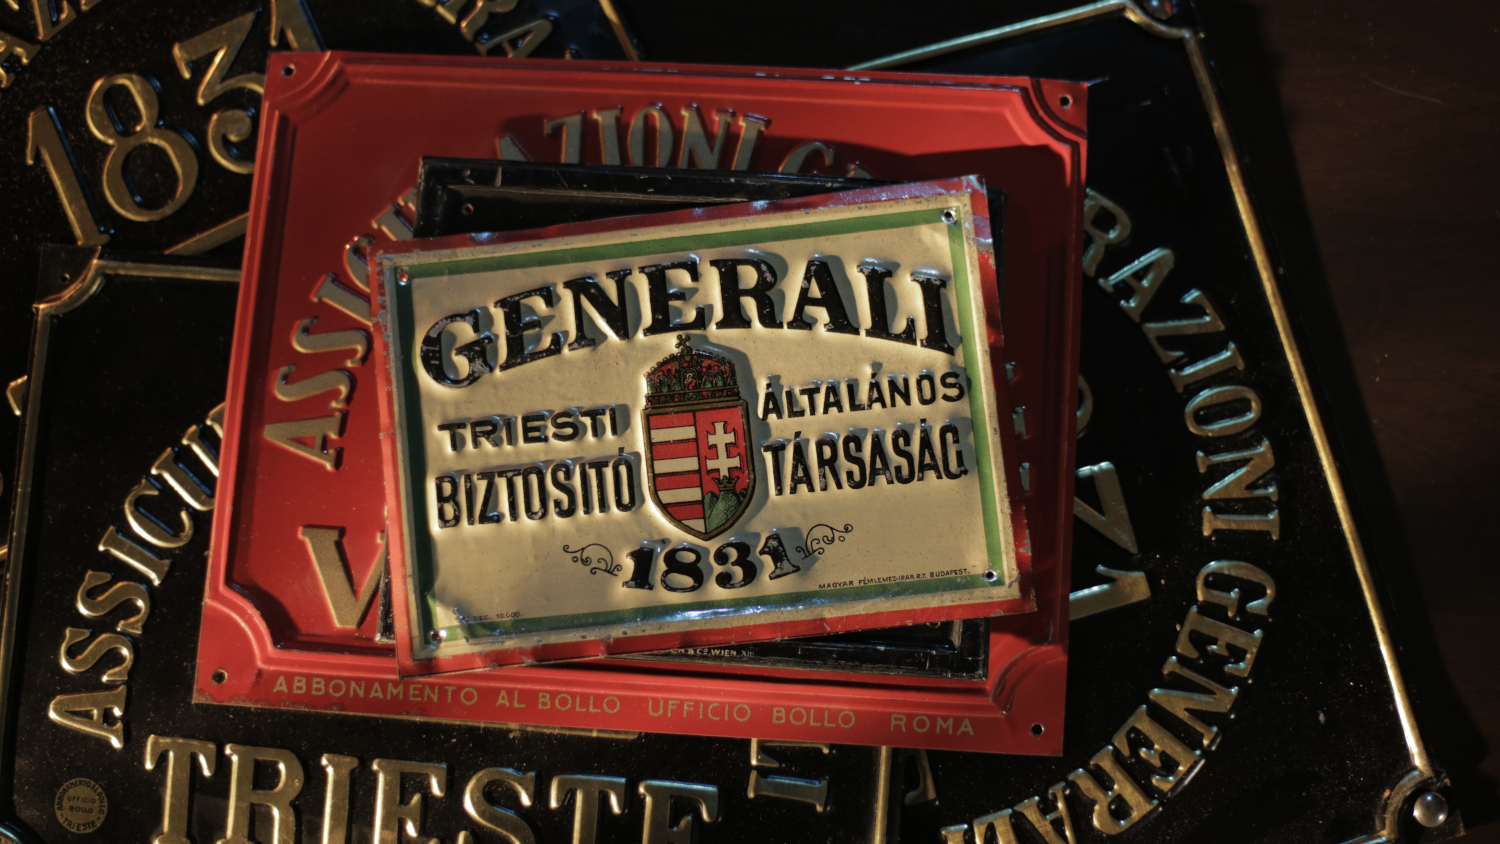 Generali Fire Marks (19th-20th century)